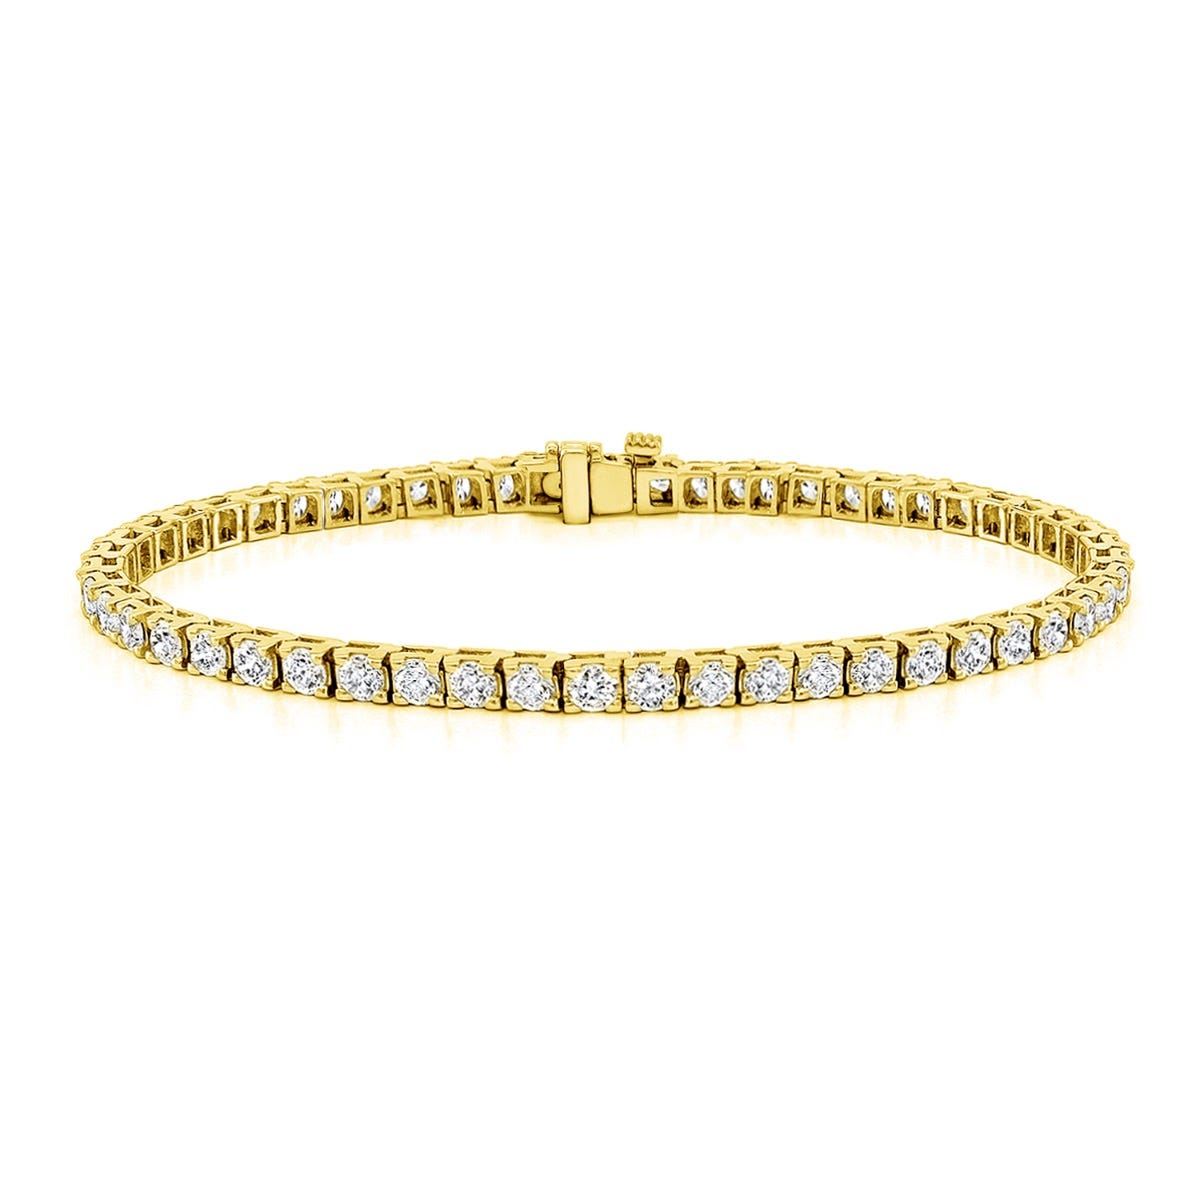 4ctw. 4-Prong Square Link Diamond Tennis Bracelet in 14K Yellow Gold (IJ, I1-I2, 52-Stone)